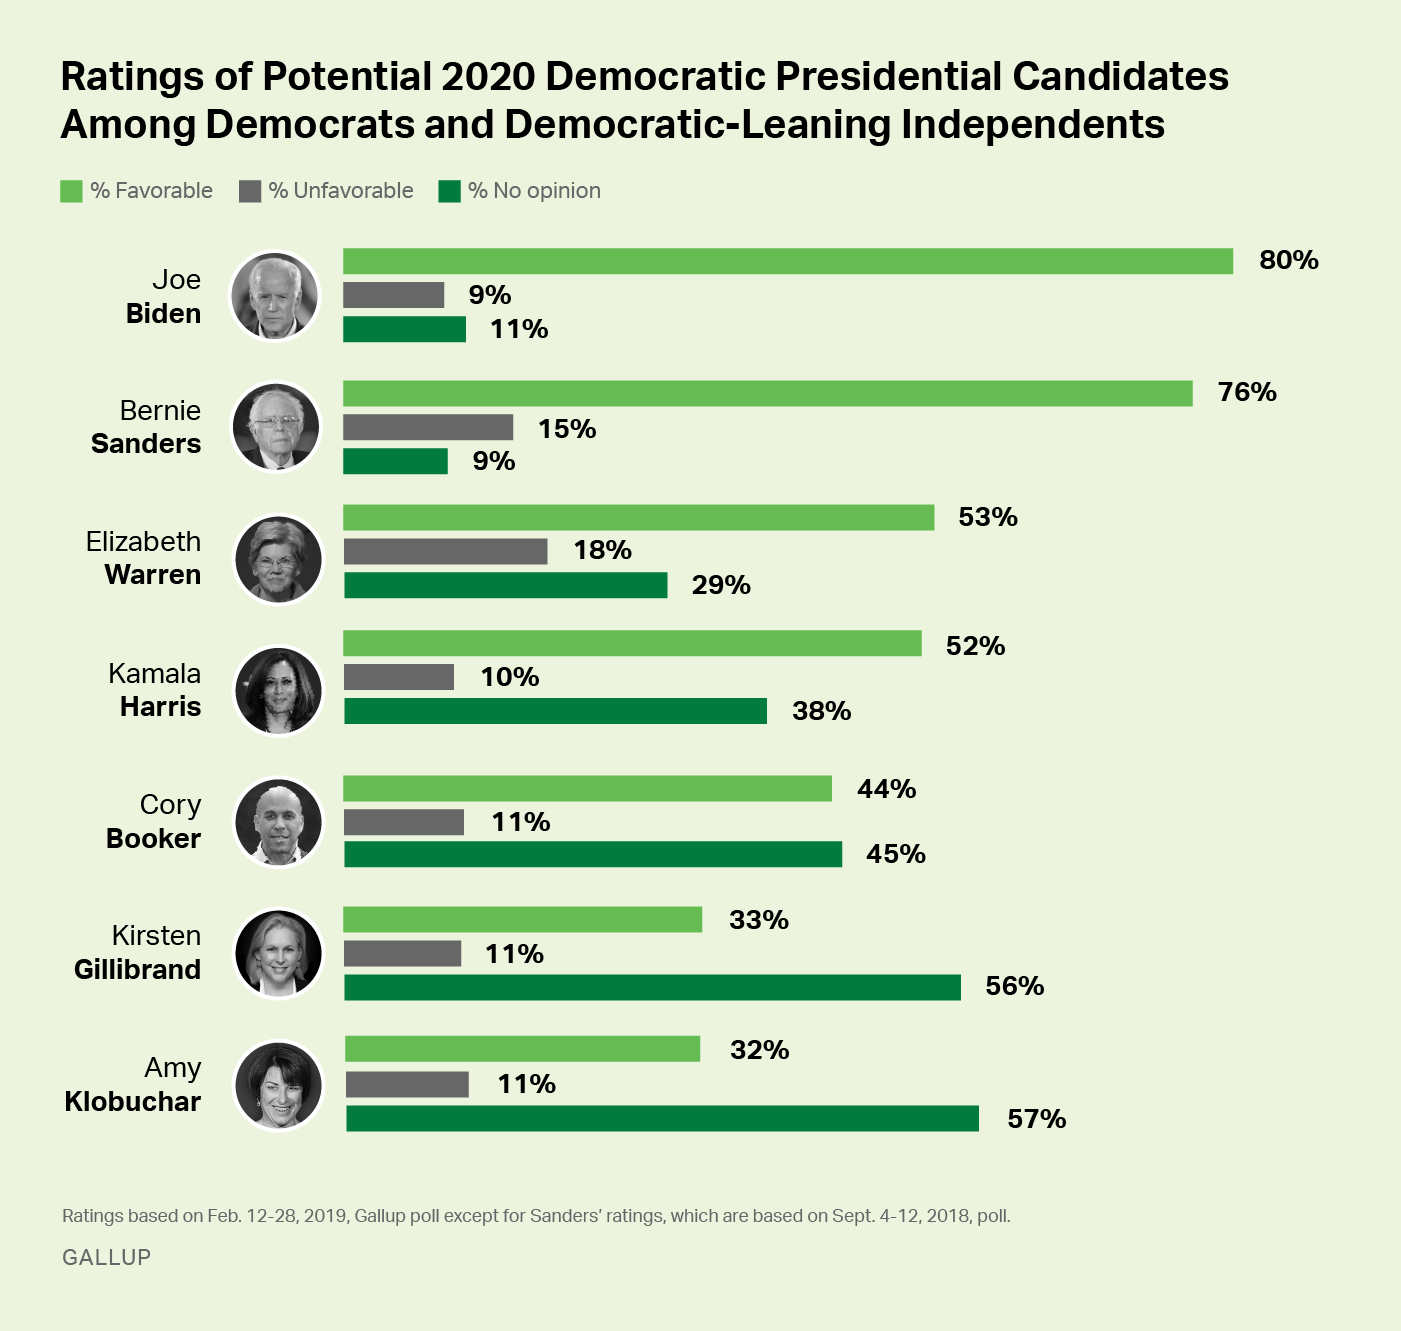 Bar graph: Favorability ratings of 7 potential 2020 Democratic presidential candidates, among Democrats + Democratic leaners.